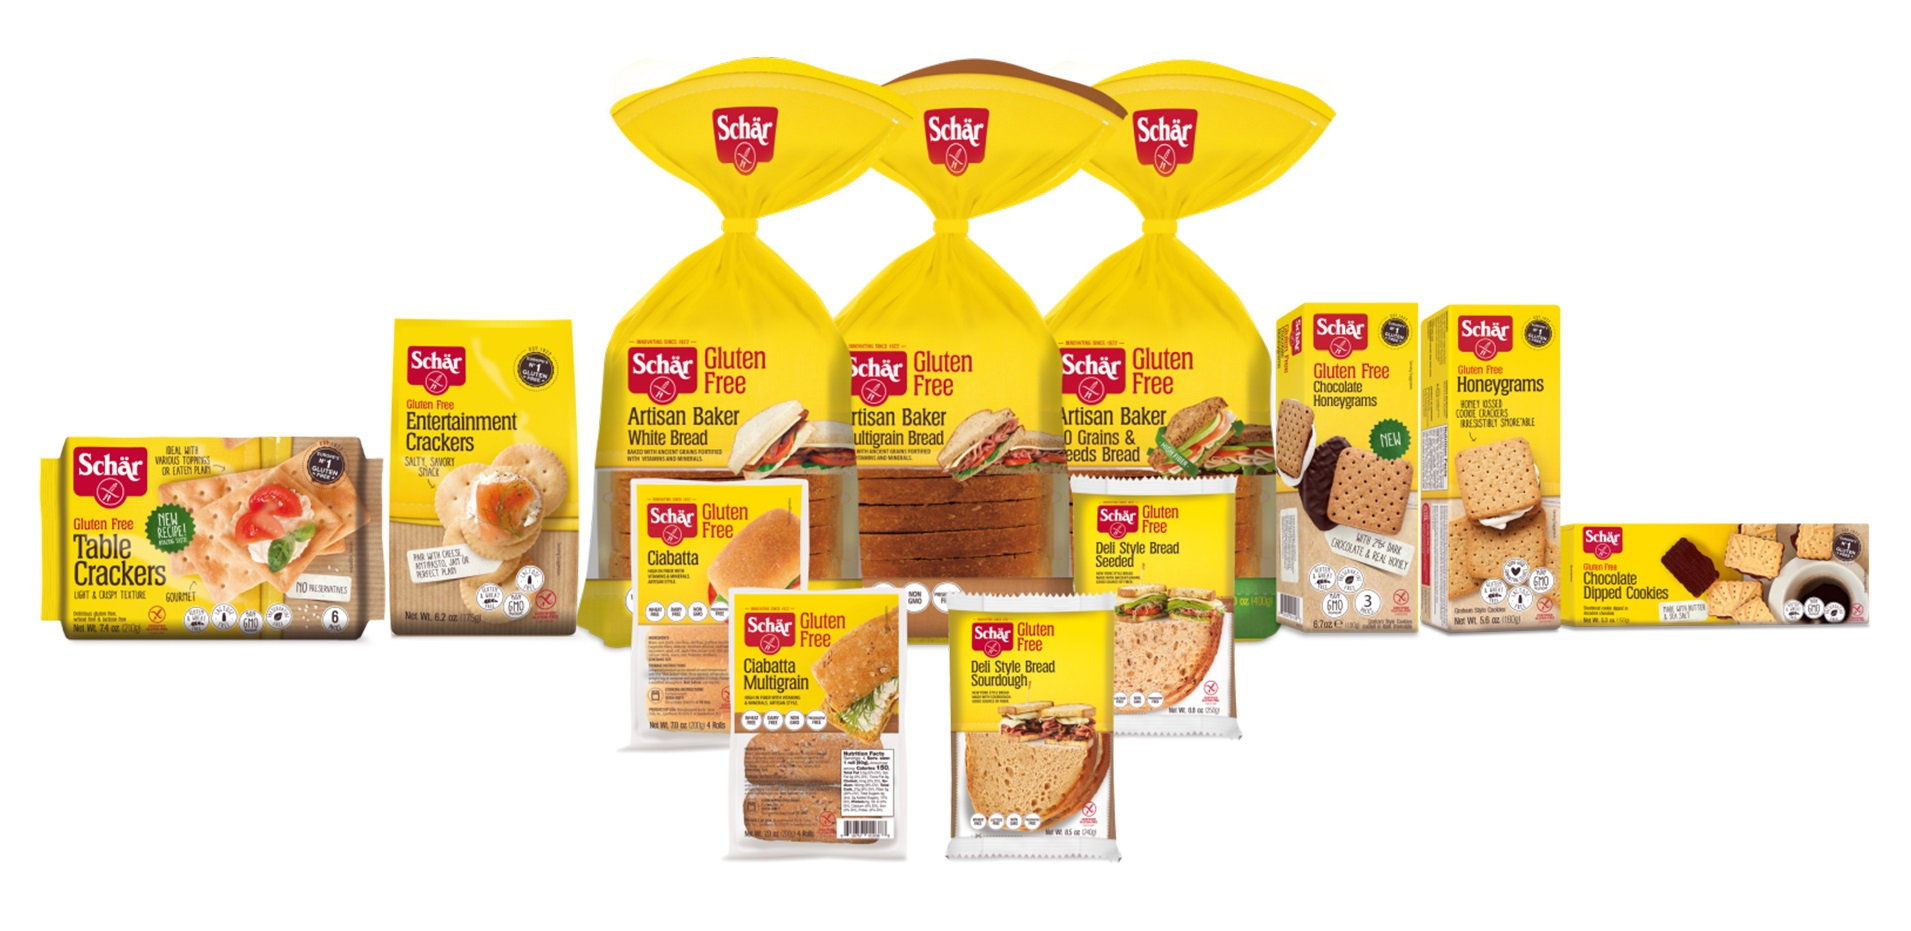 Image of Schär Food Products